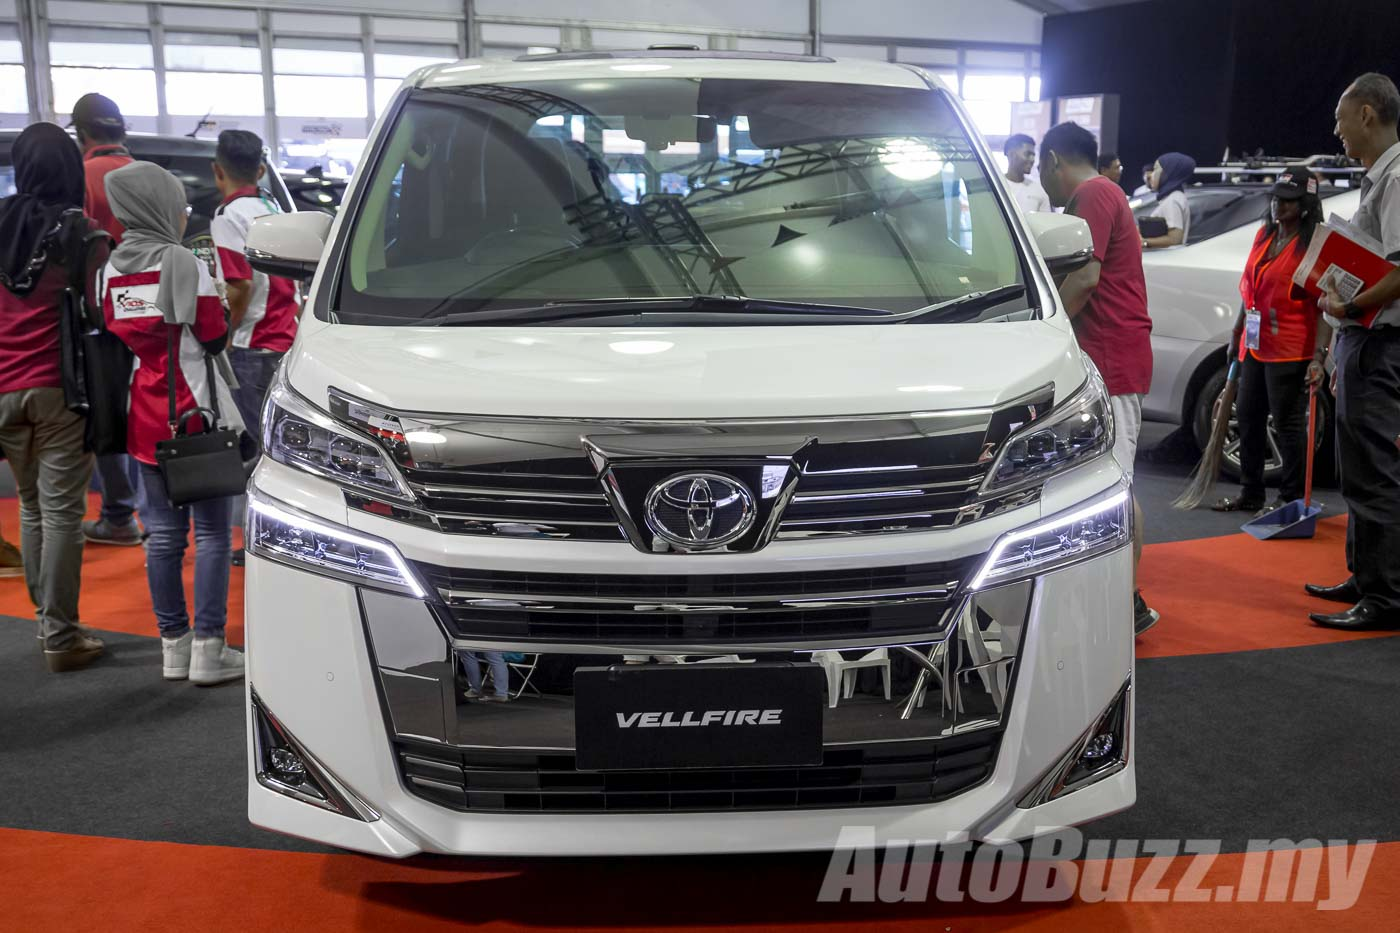 Toyota Vellfire & Alphard facelift now in Malaysia, RM351k to RM541k